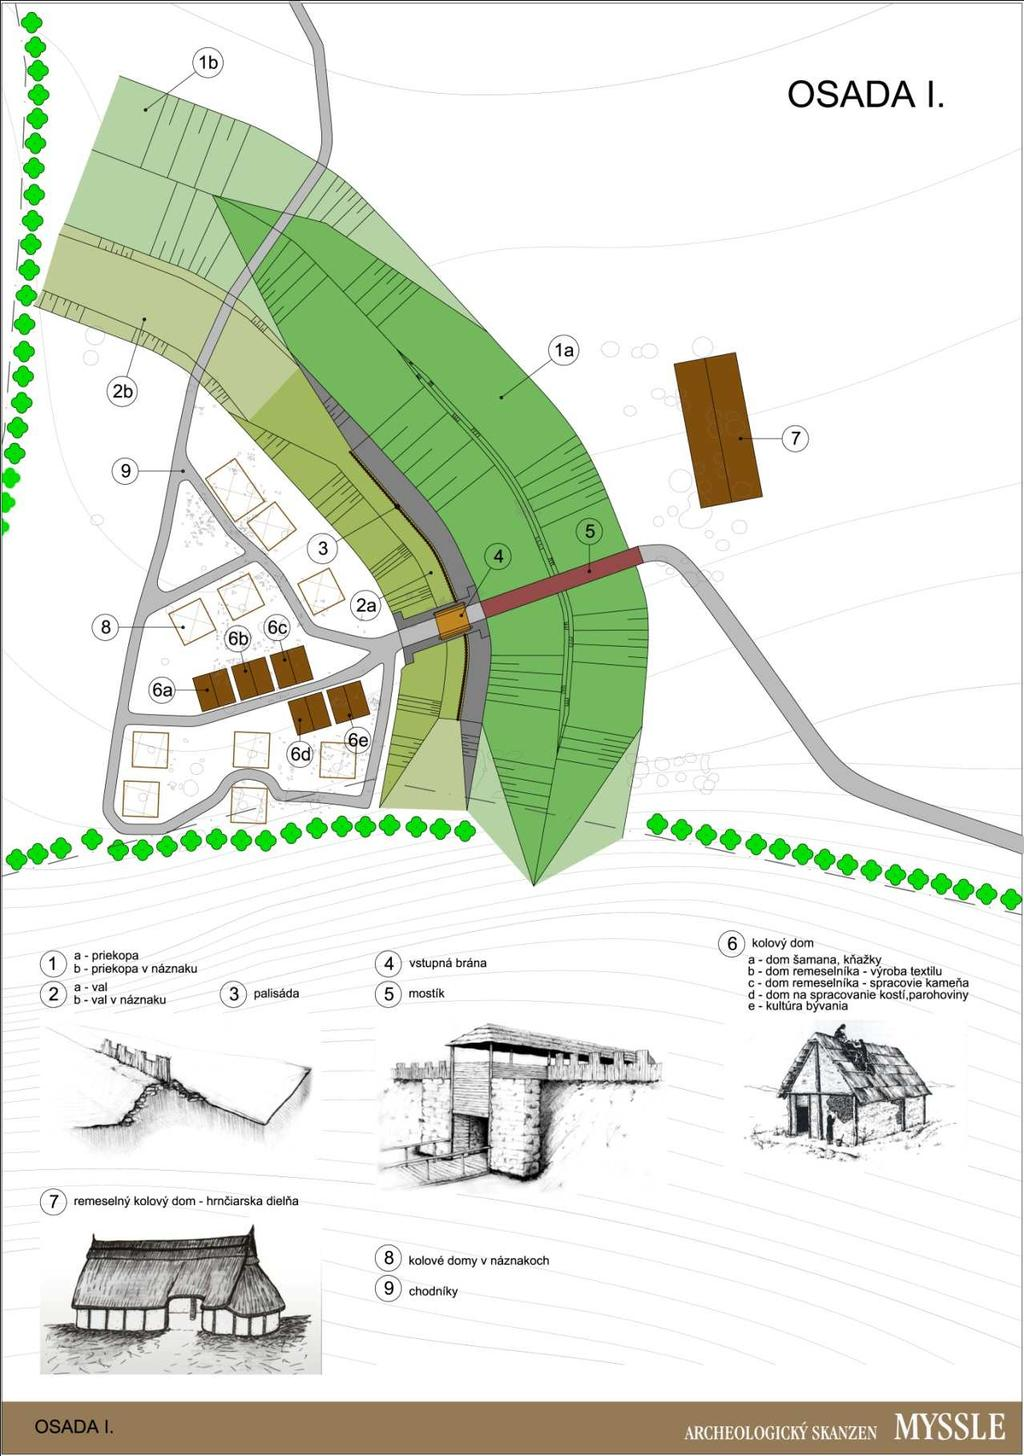 Fig. 7 Plan of village